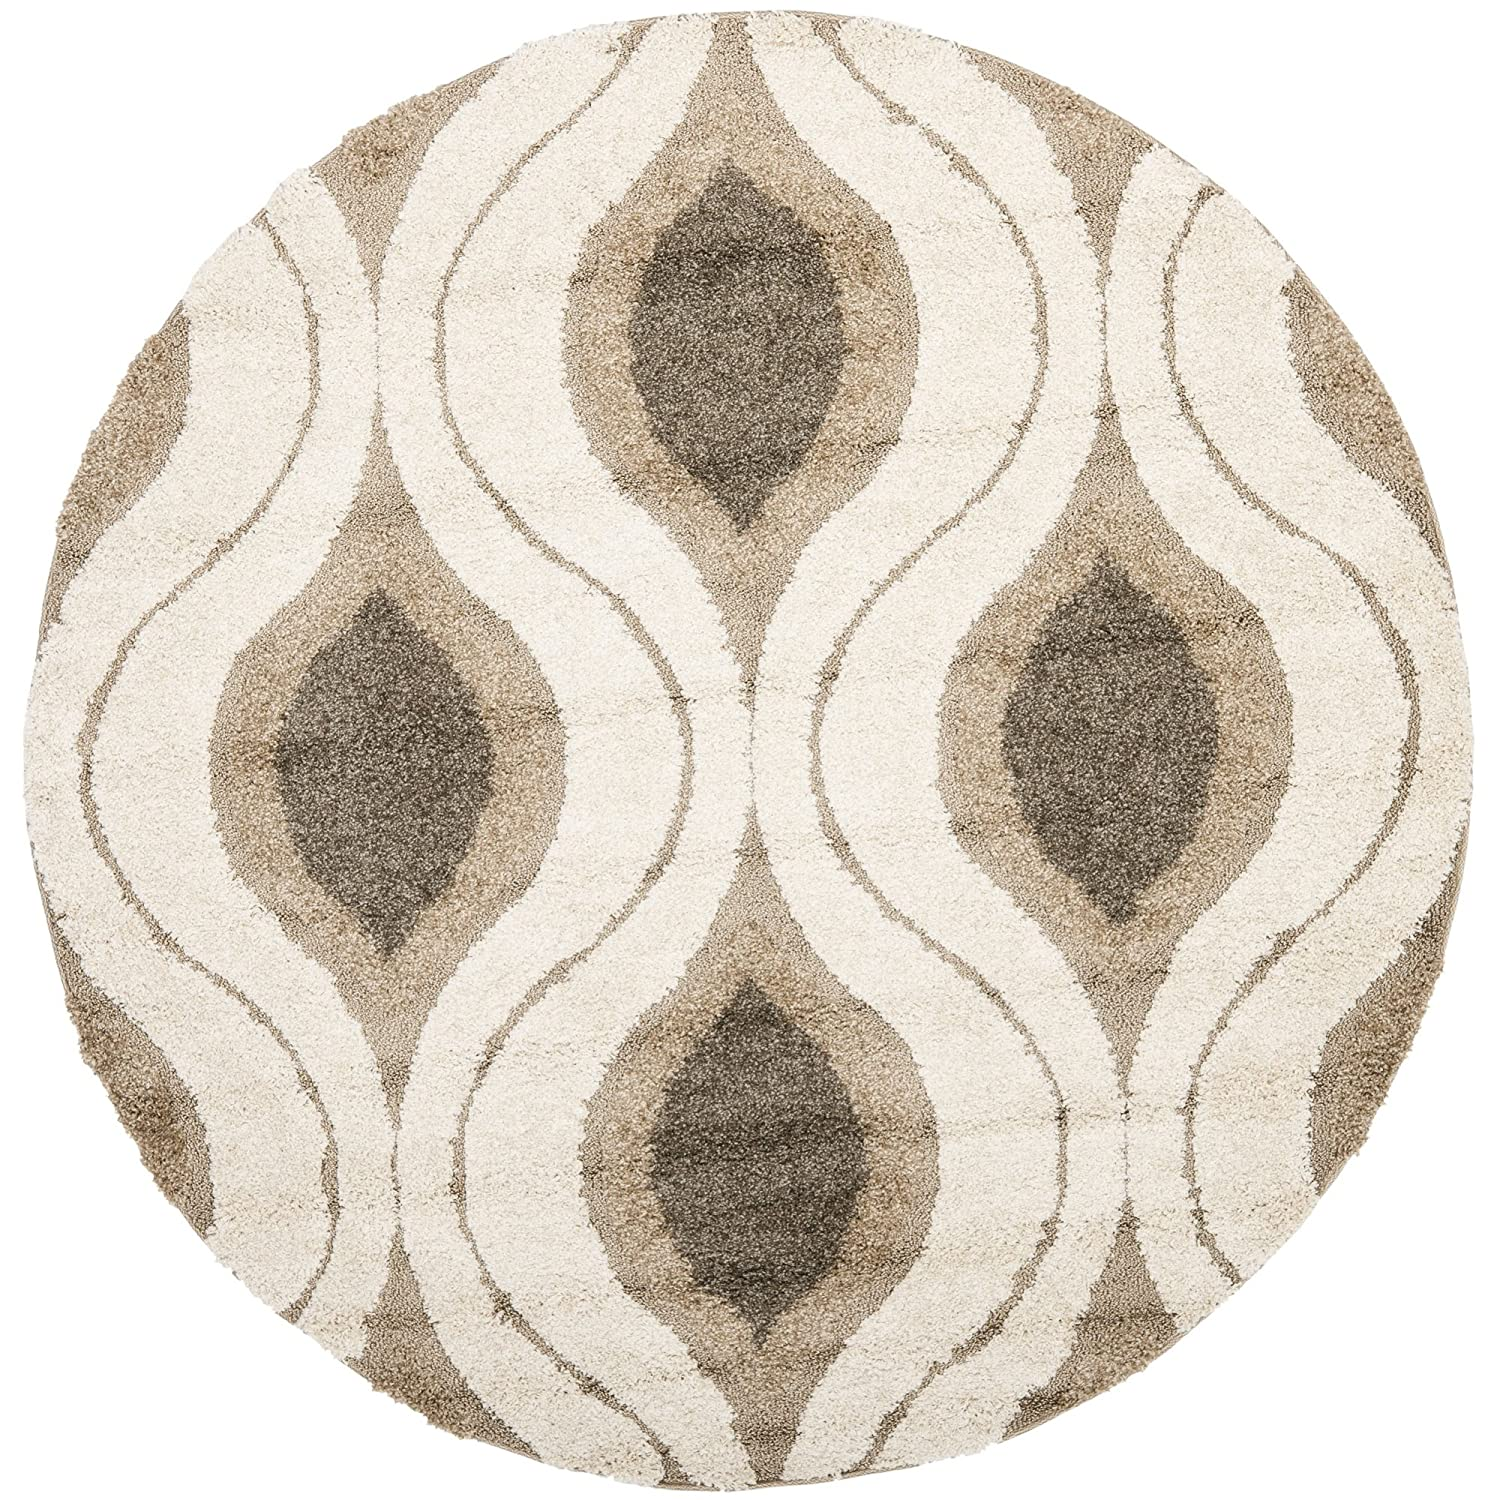 area winning rug round of elegant rugs ft for foot square luxury image result firstumcnewiberia